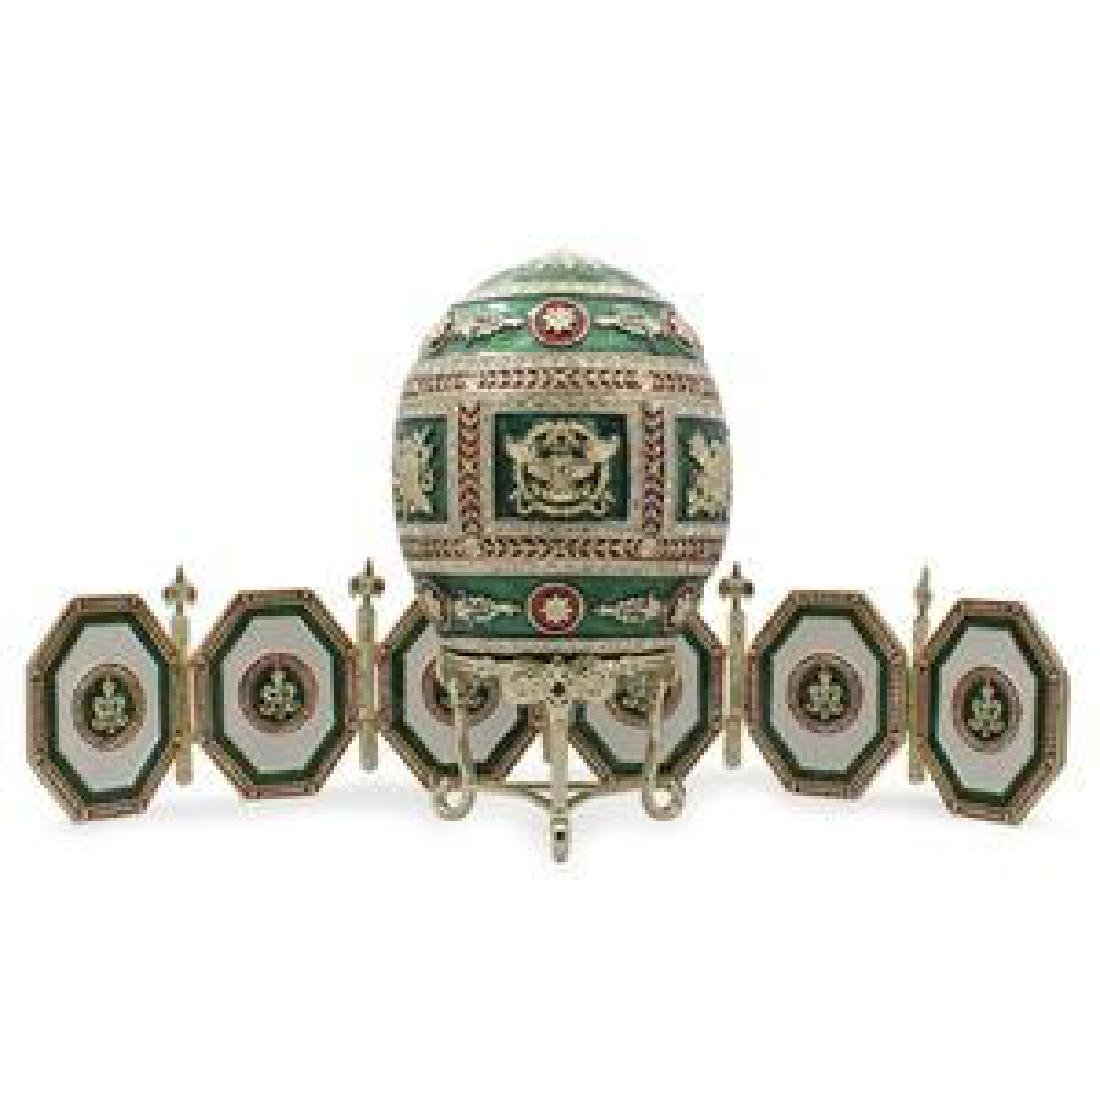 1912 Napoleonic Russian Faberge Egg with Picture Frames